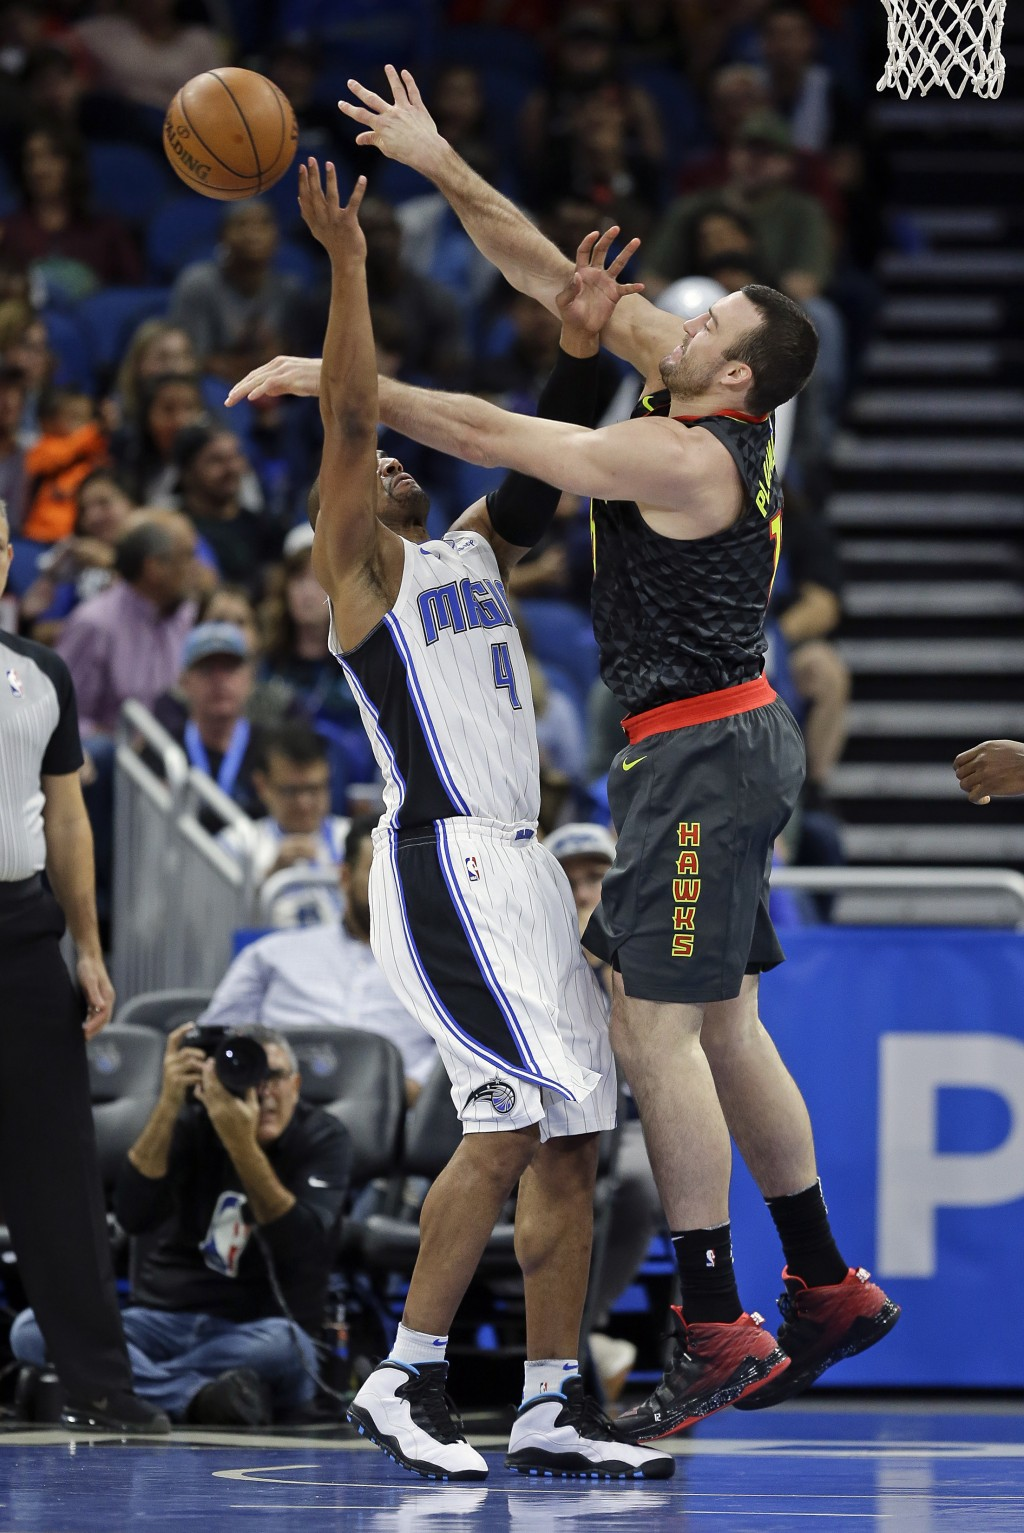 Orlando Magic's Arron Afflalo (4) battles Atlanta Hawks' Miles Plumlee, right, for a rebound during the first half of an NBA basketball game, Wednesda